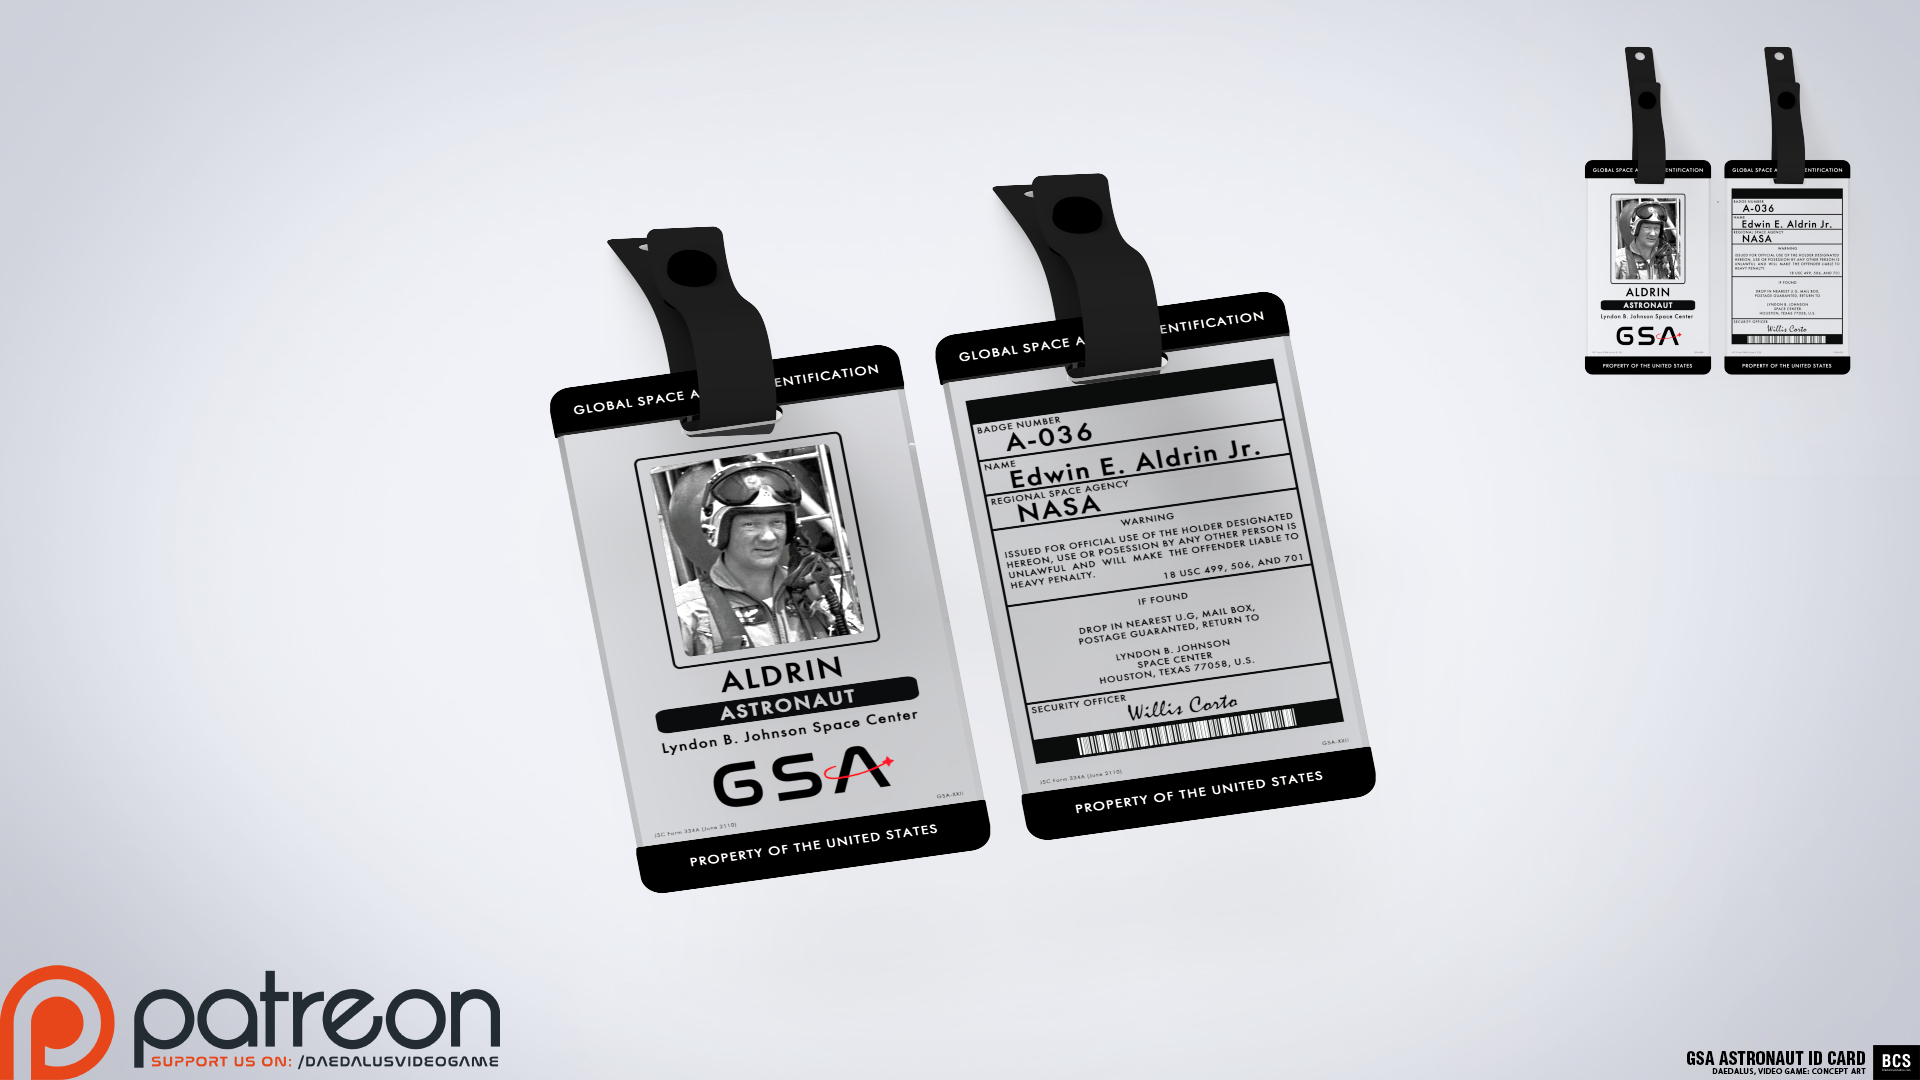 GSA Astronaut ID Card image - Daedalus, Video Game - Mod DB